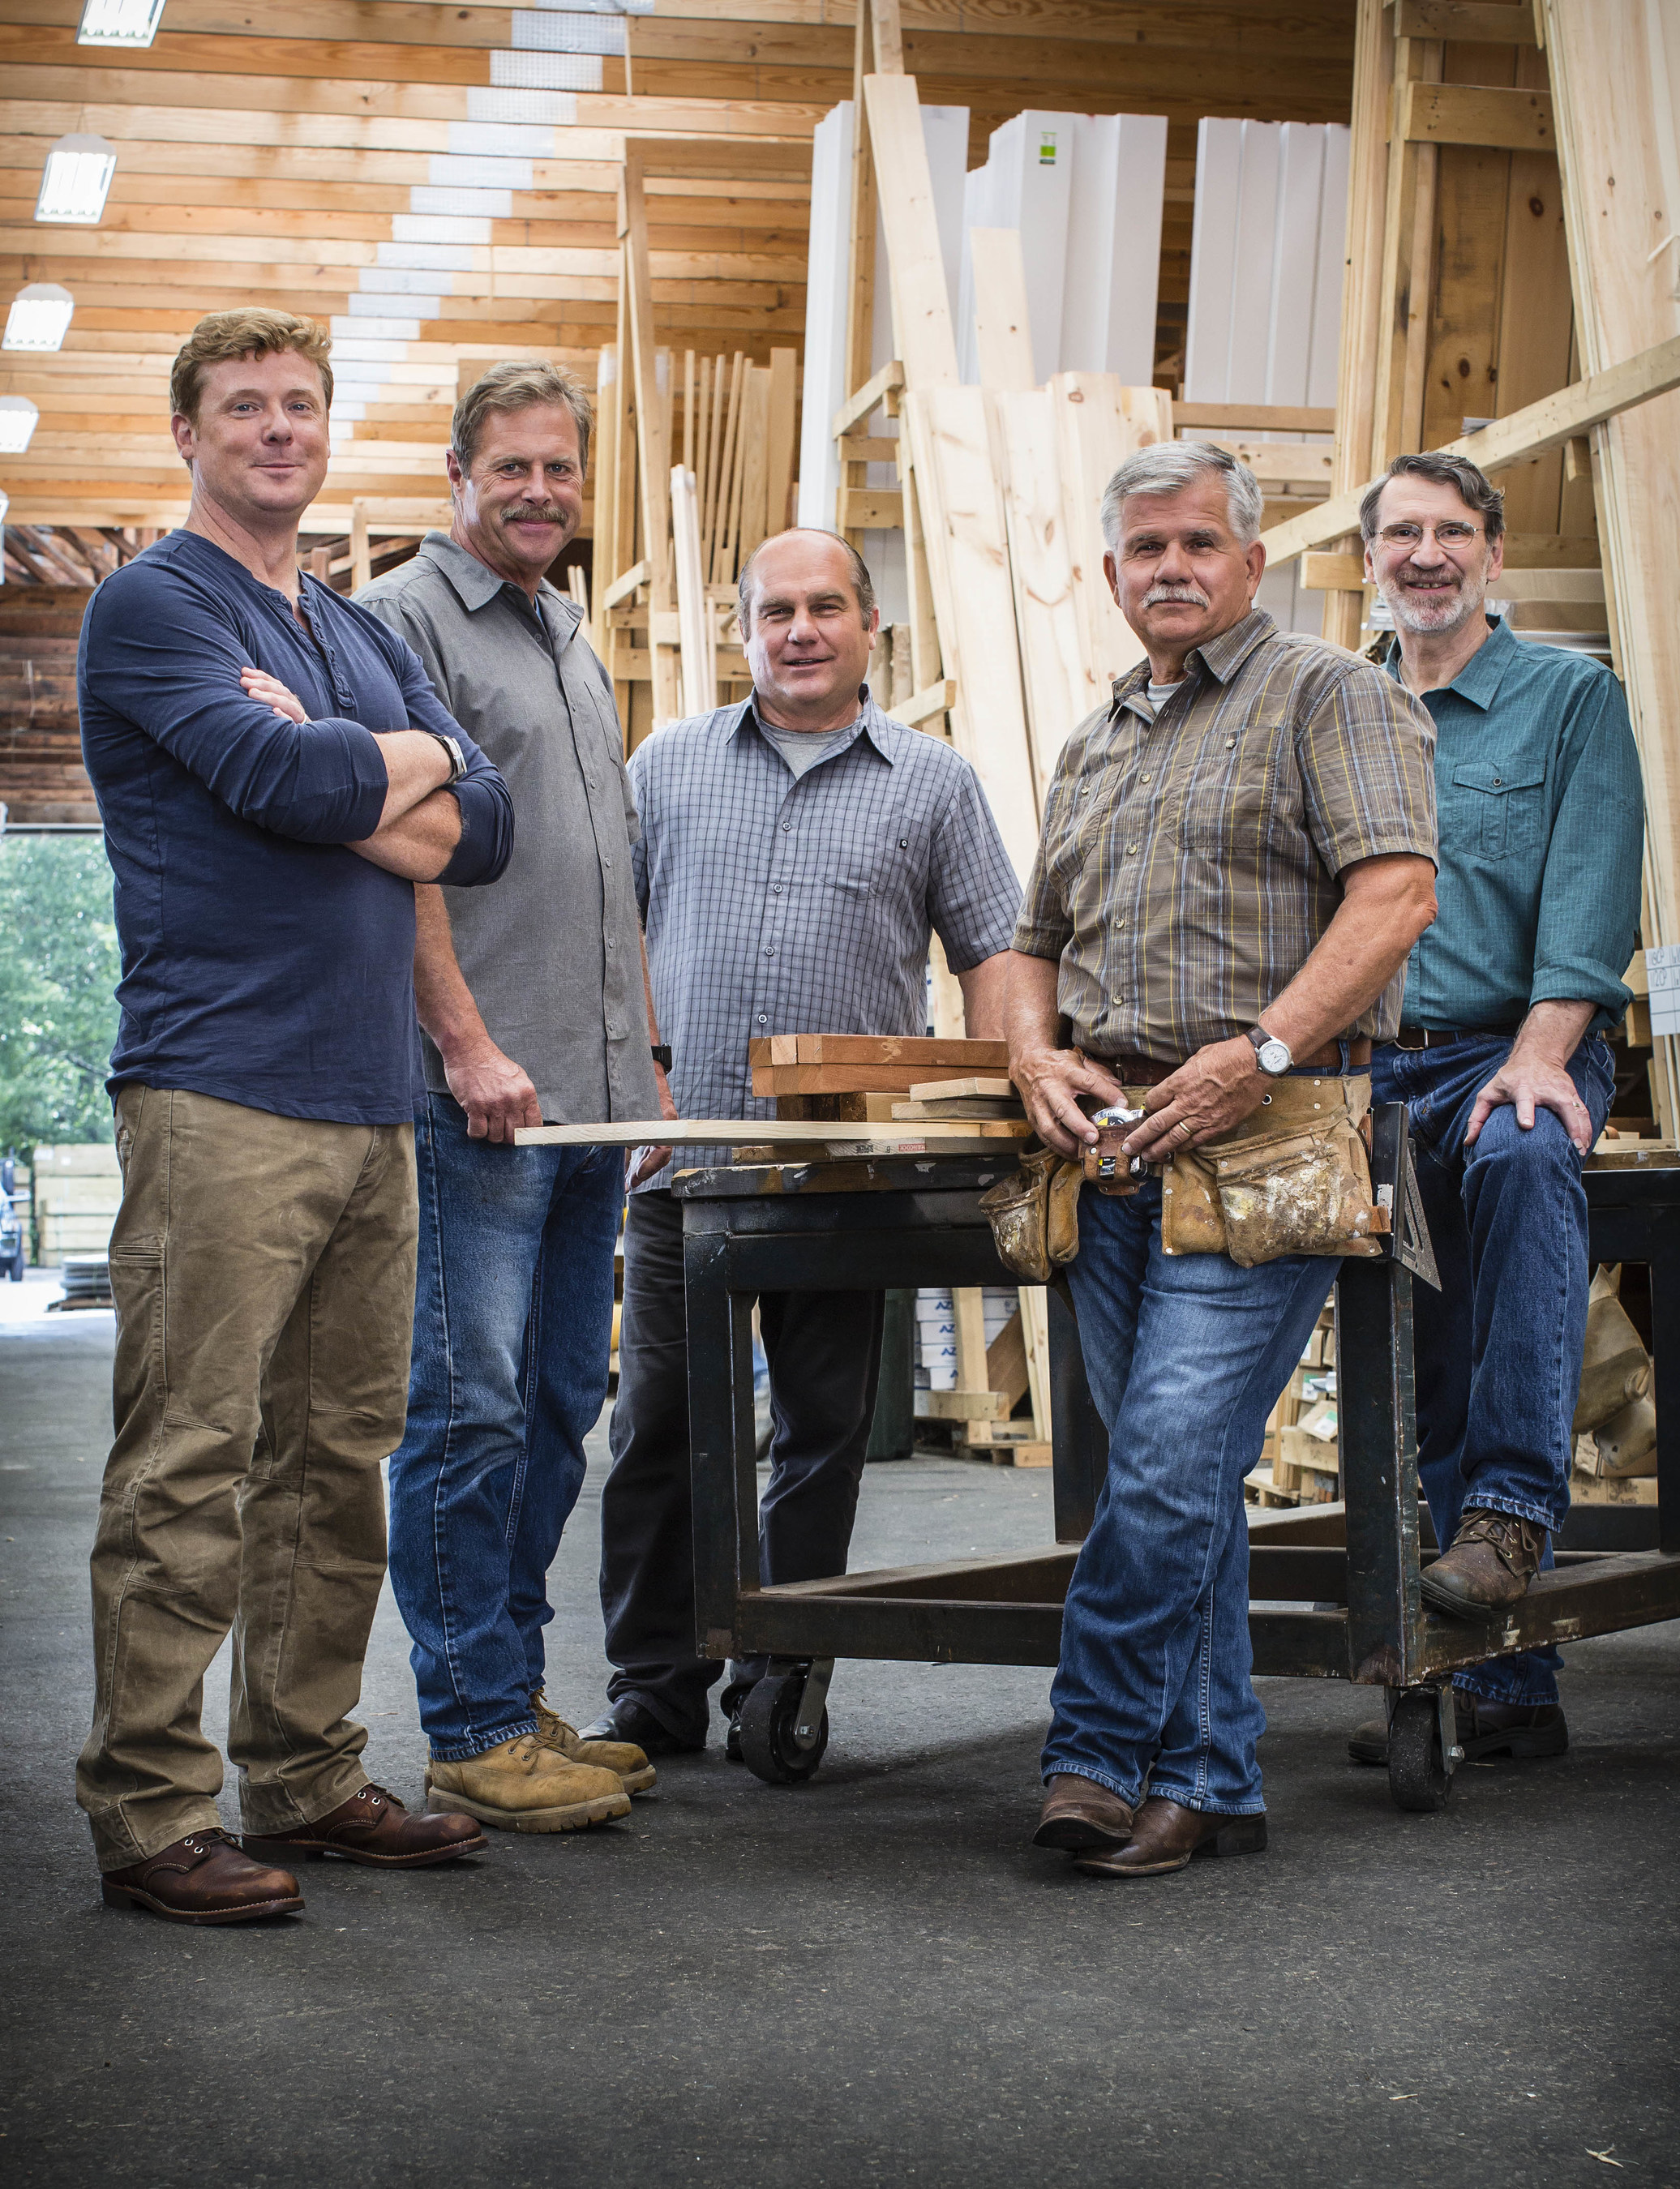 """Cast of new season of """"This Old House,"""" premiering October 1, 2015 on PBS (check local listings). Left to right: Kevin O'Connor, Roger Cook, Richard Trethewey, Tom Silva and Norm Abram. PHOTO CREDIT: Carl Tremblay"""